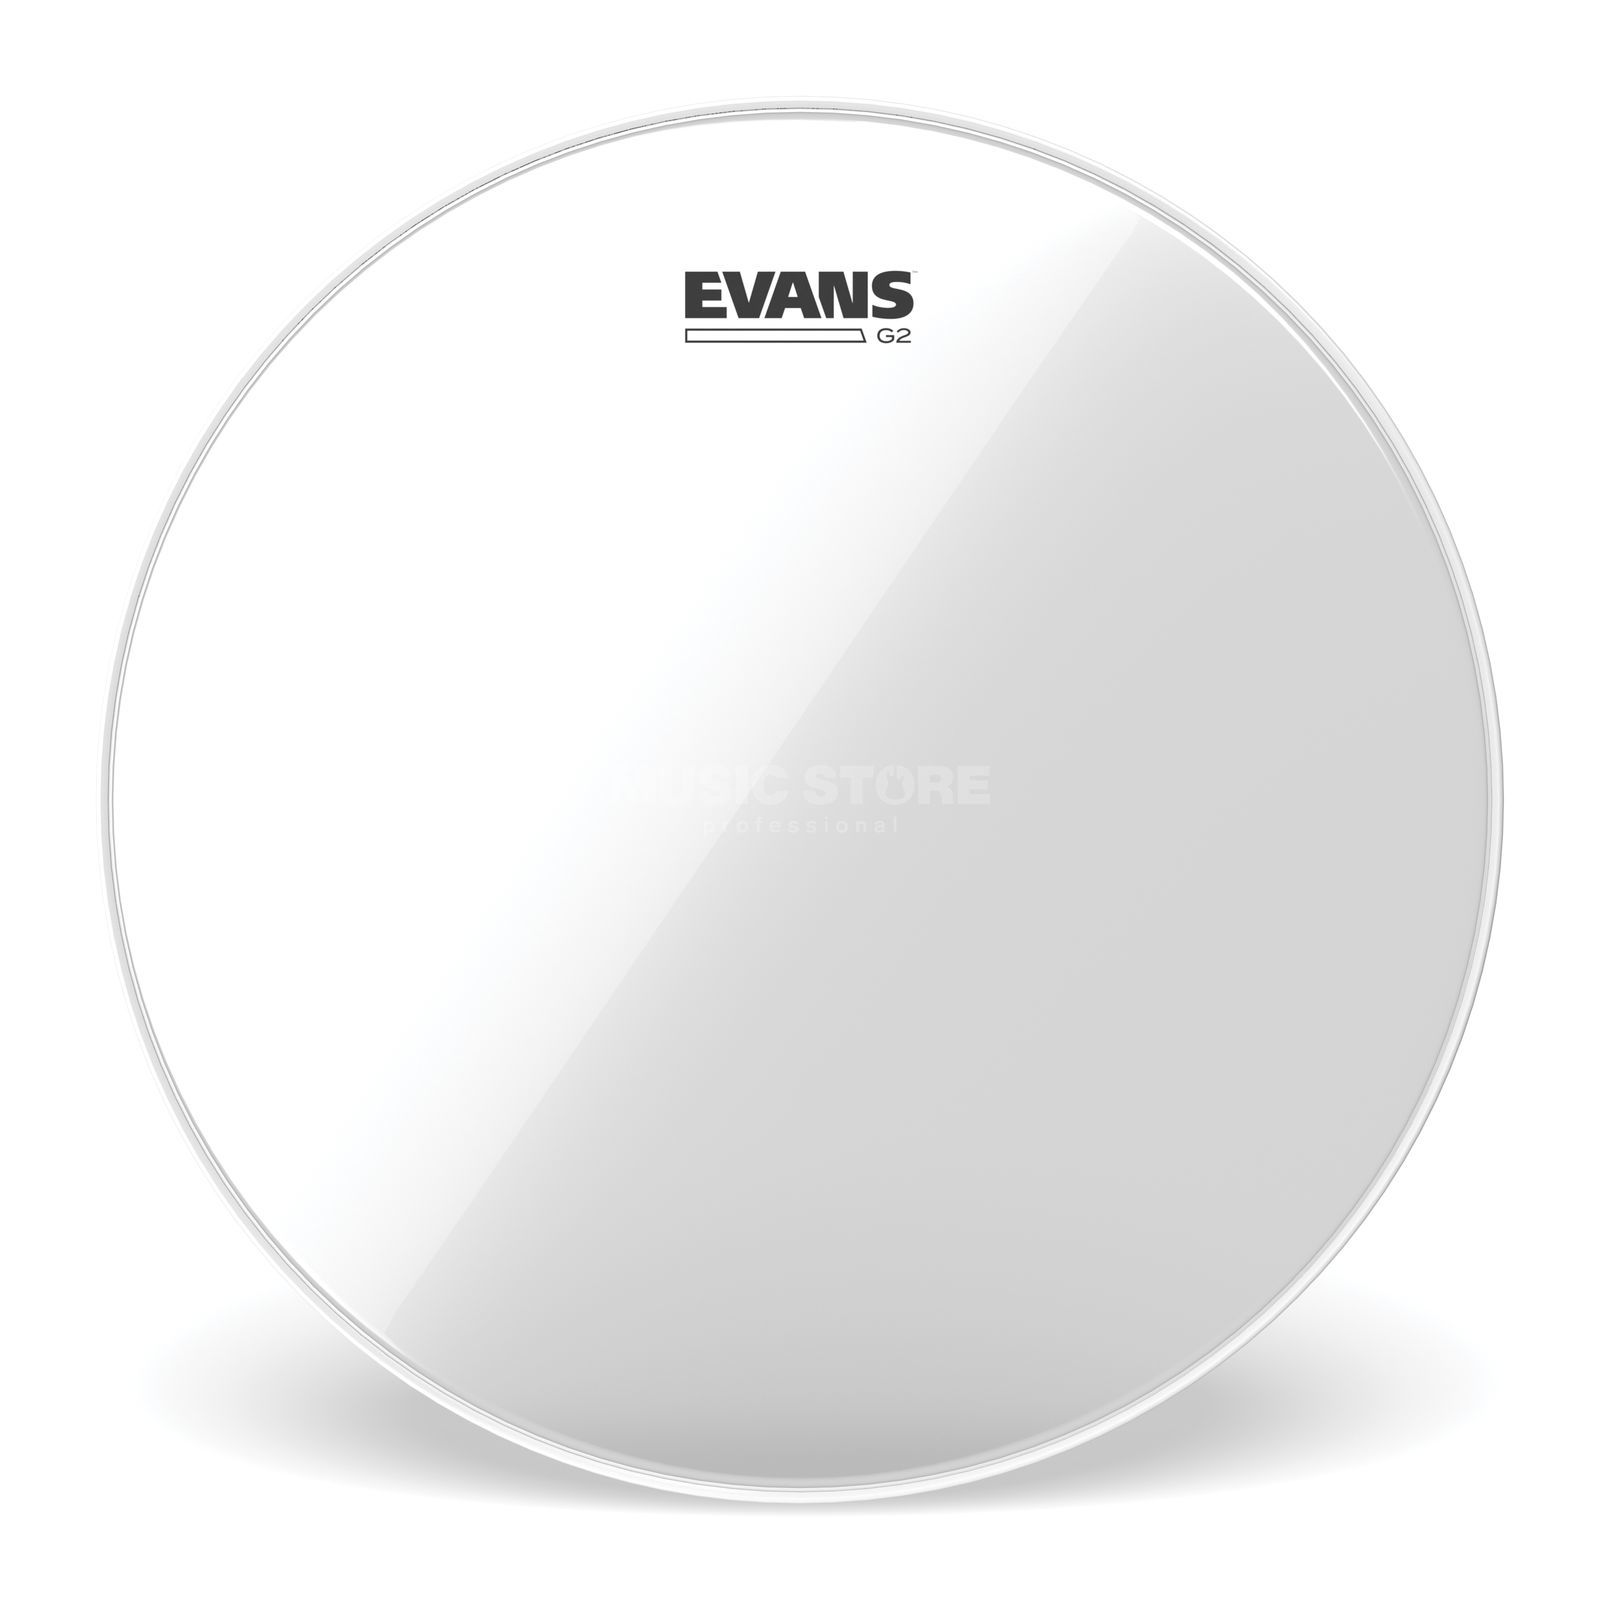 "Evans G2 Clear 8"", TT08G2, Tom Batter Product Image"